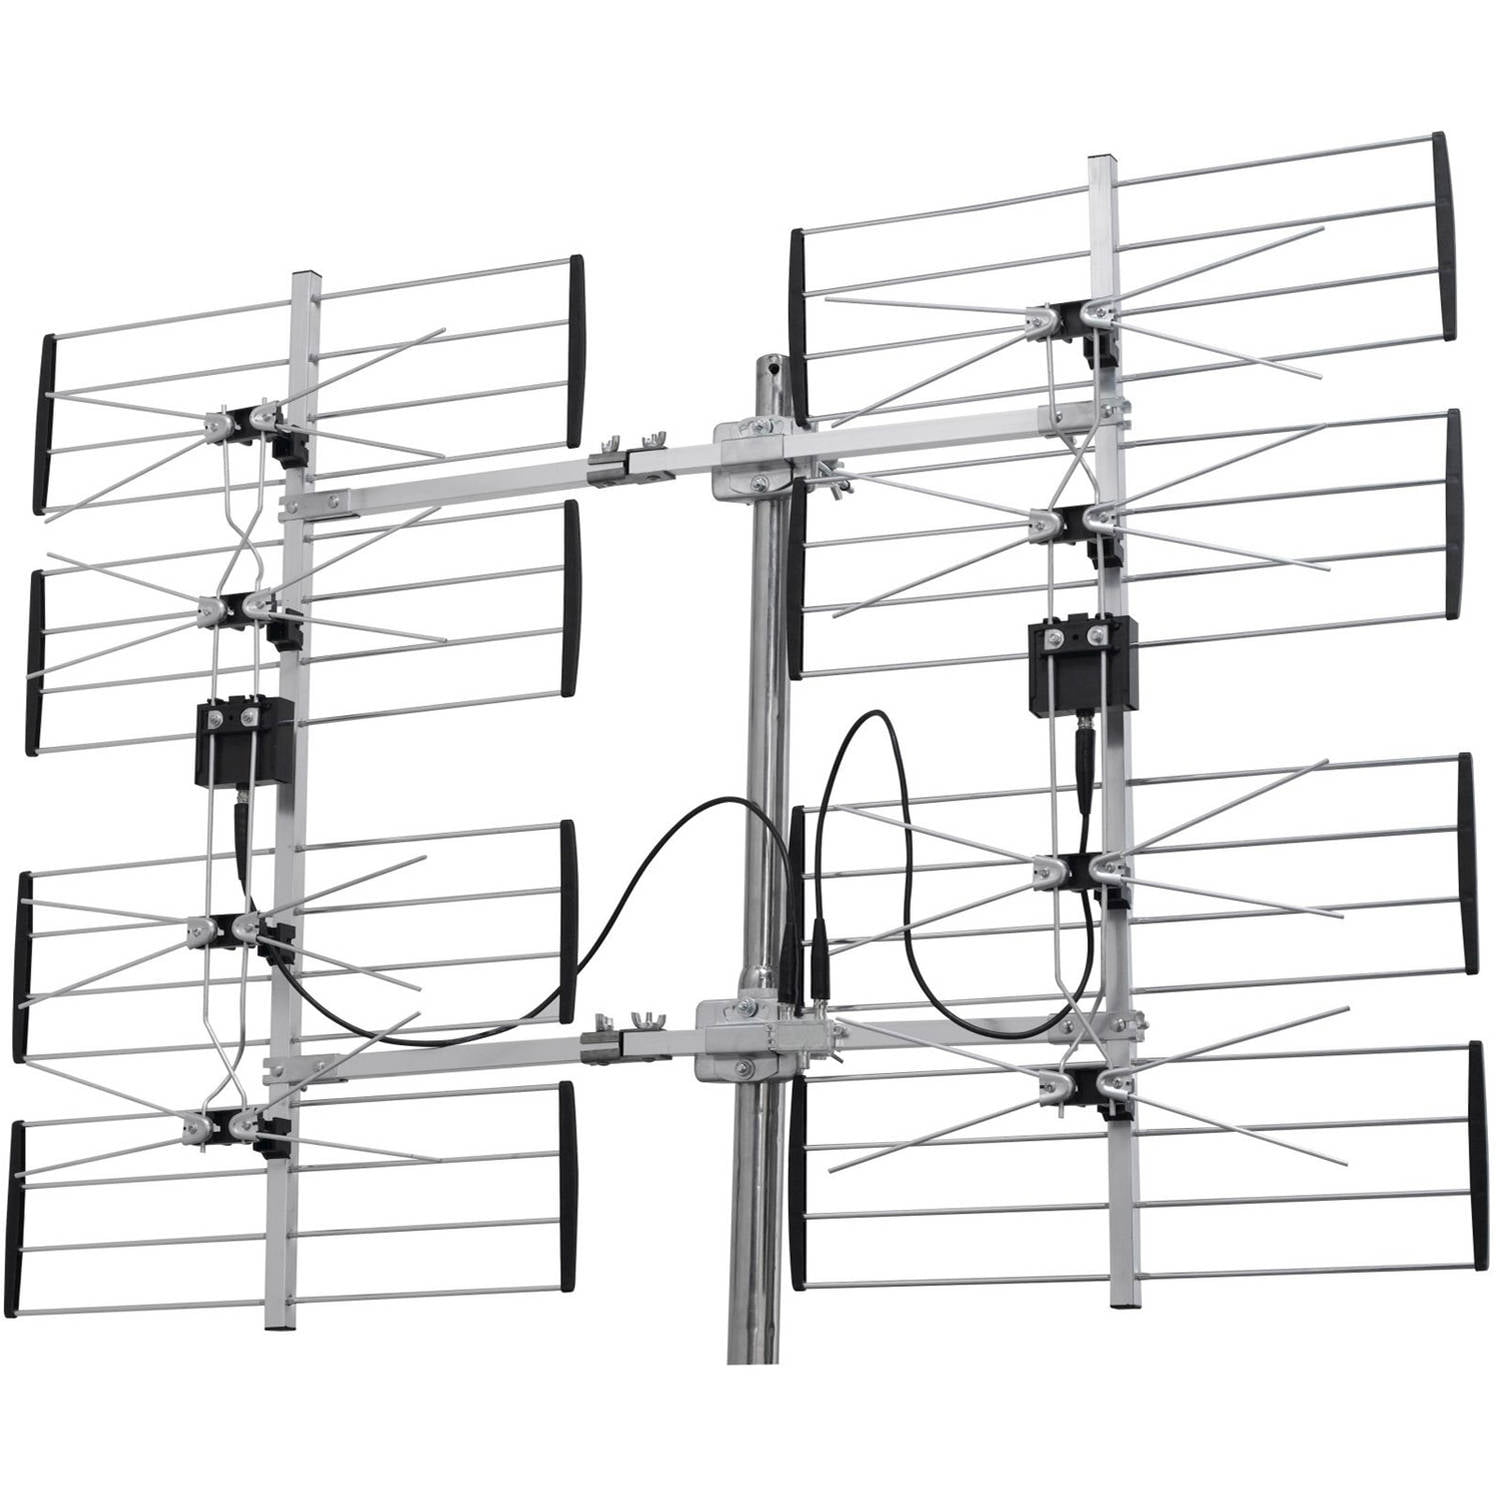 Digiwave 8 Bay Ultra-Clear Digital Outdoor TV Antenna, ANT7285 - Walmart.com